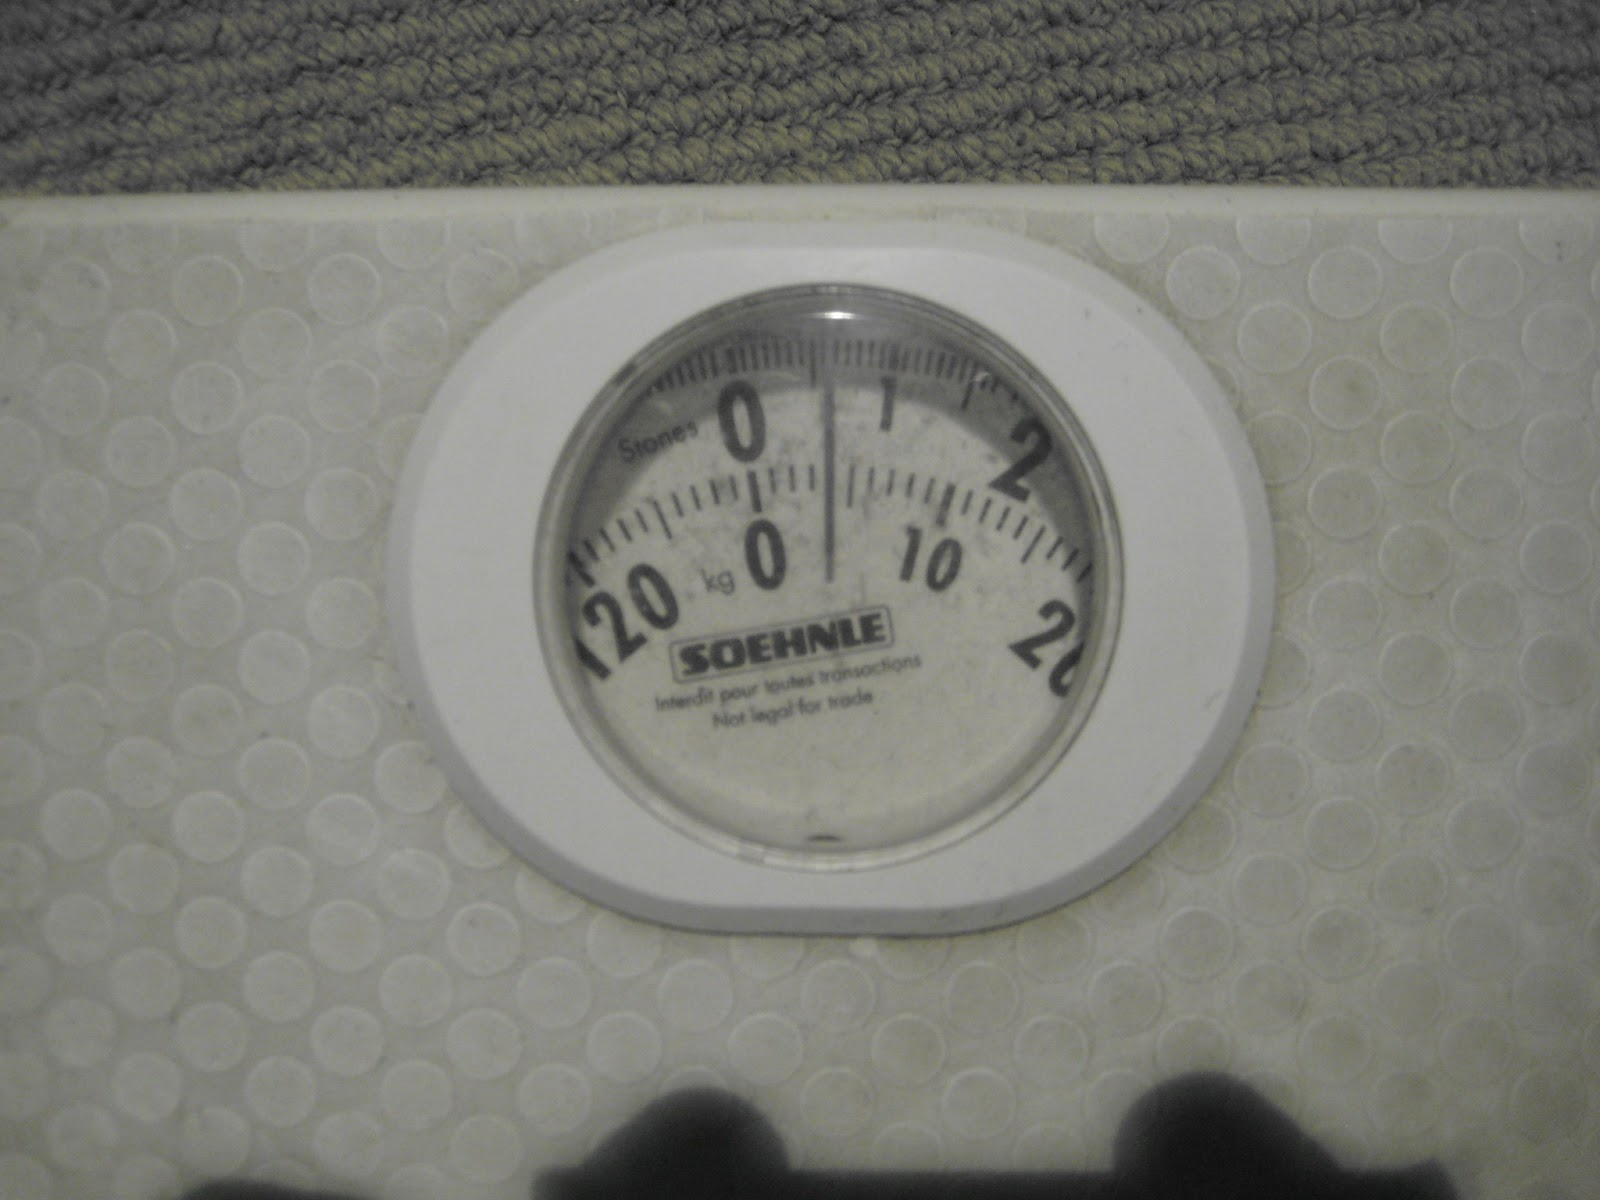 Alex 39 s cycle blog the bathroom scale analogy - How to calibrate a bathroom scale ...